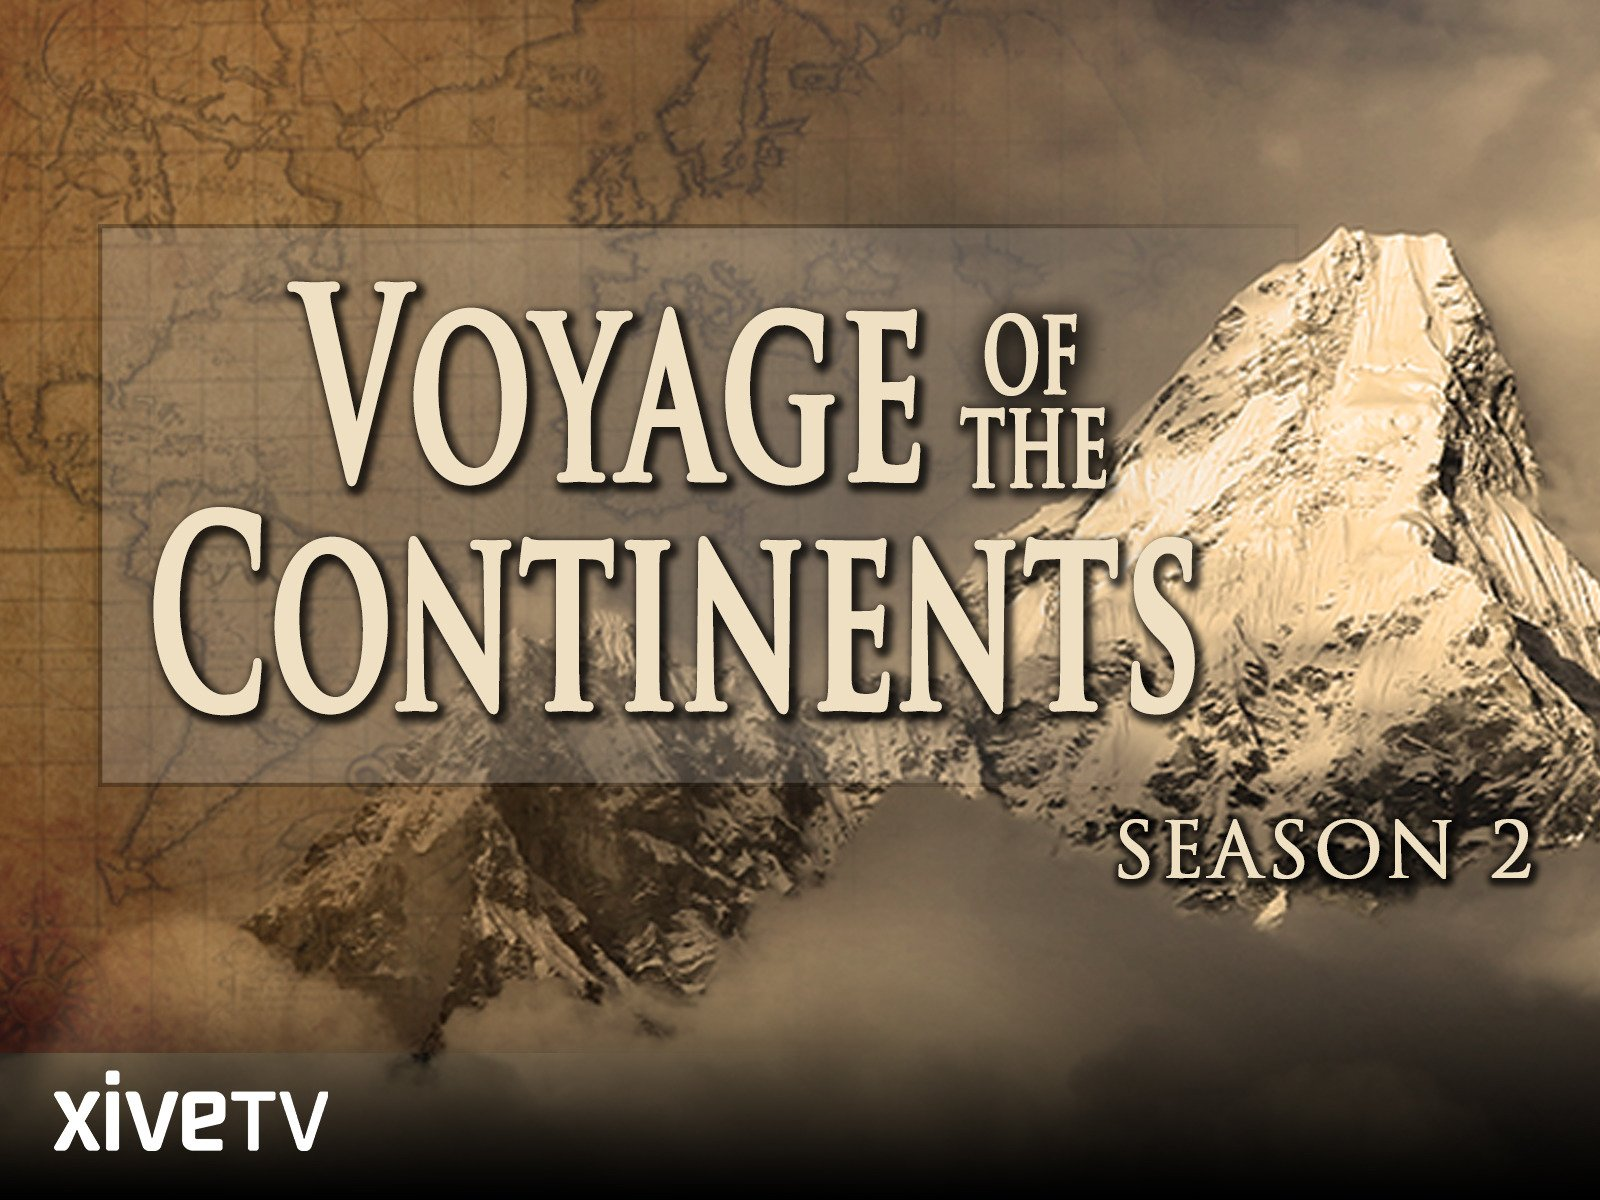 Voyage of the Continents - Season 1